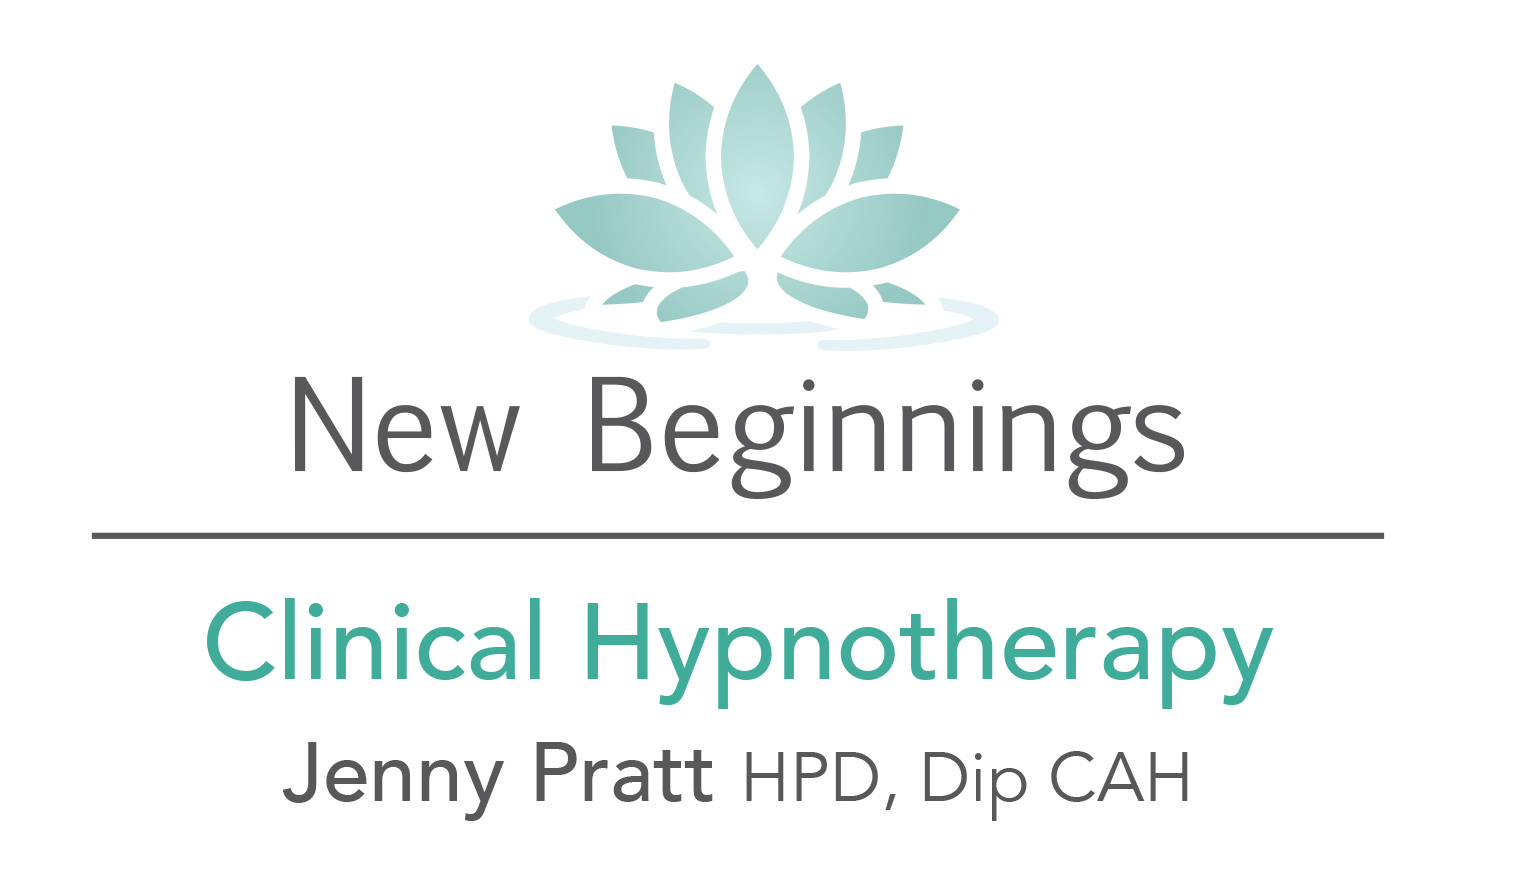 New beginnings jenny pratt clinical hypnotherapy, lotus logo